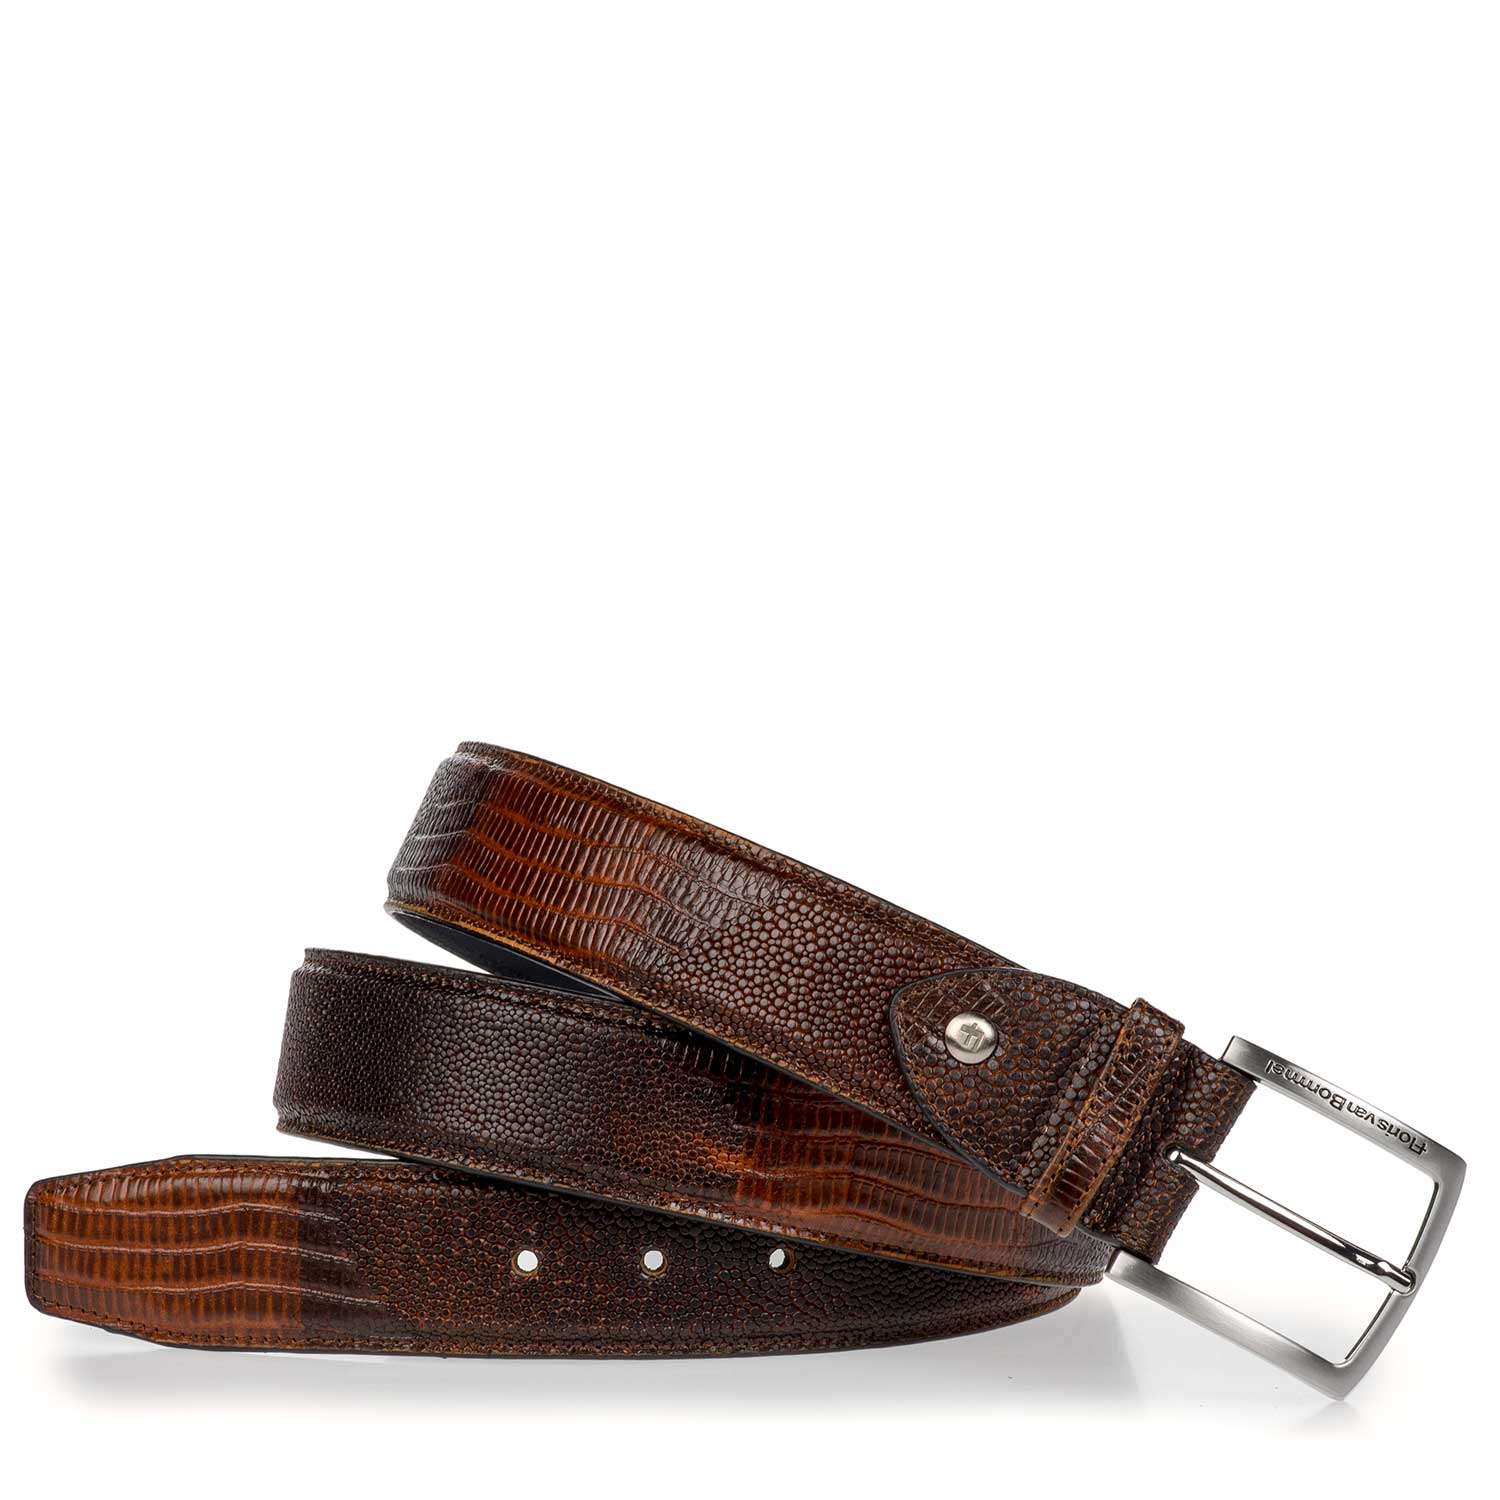 75189/45 - Cognac-coloured leather belt with lizard print